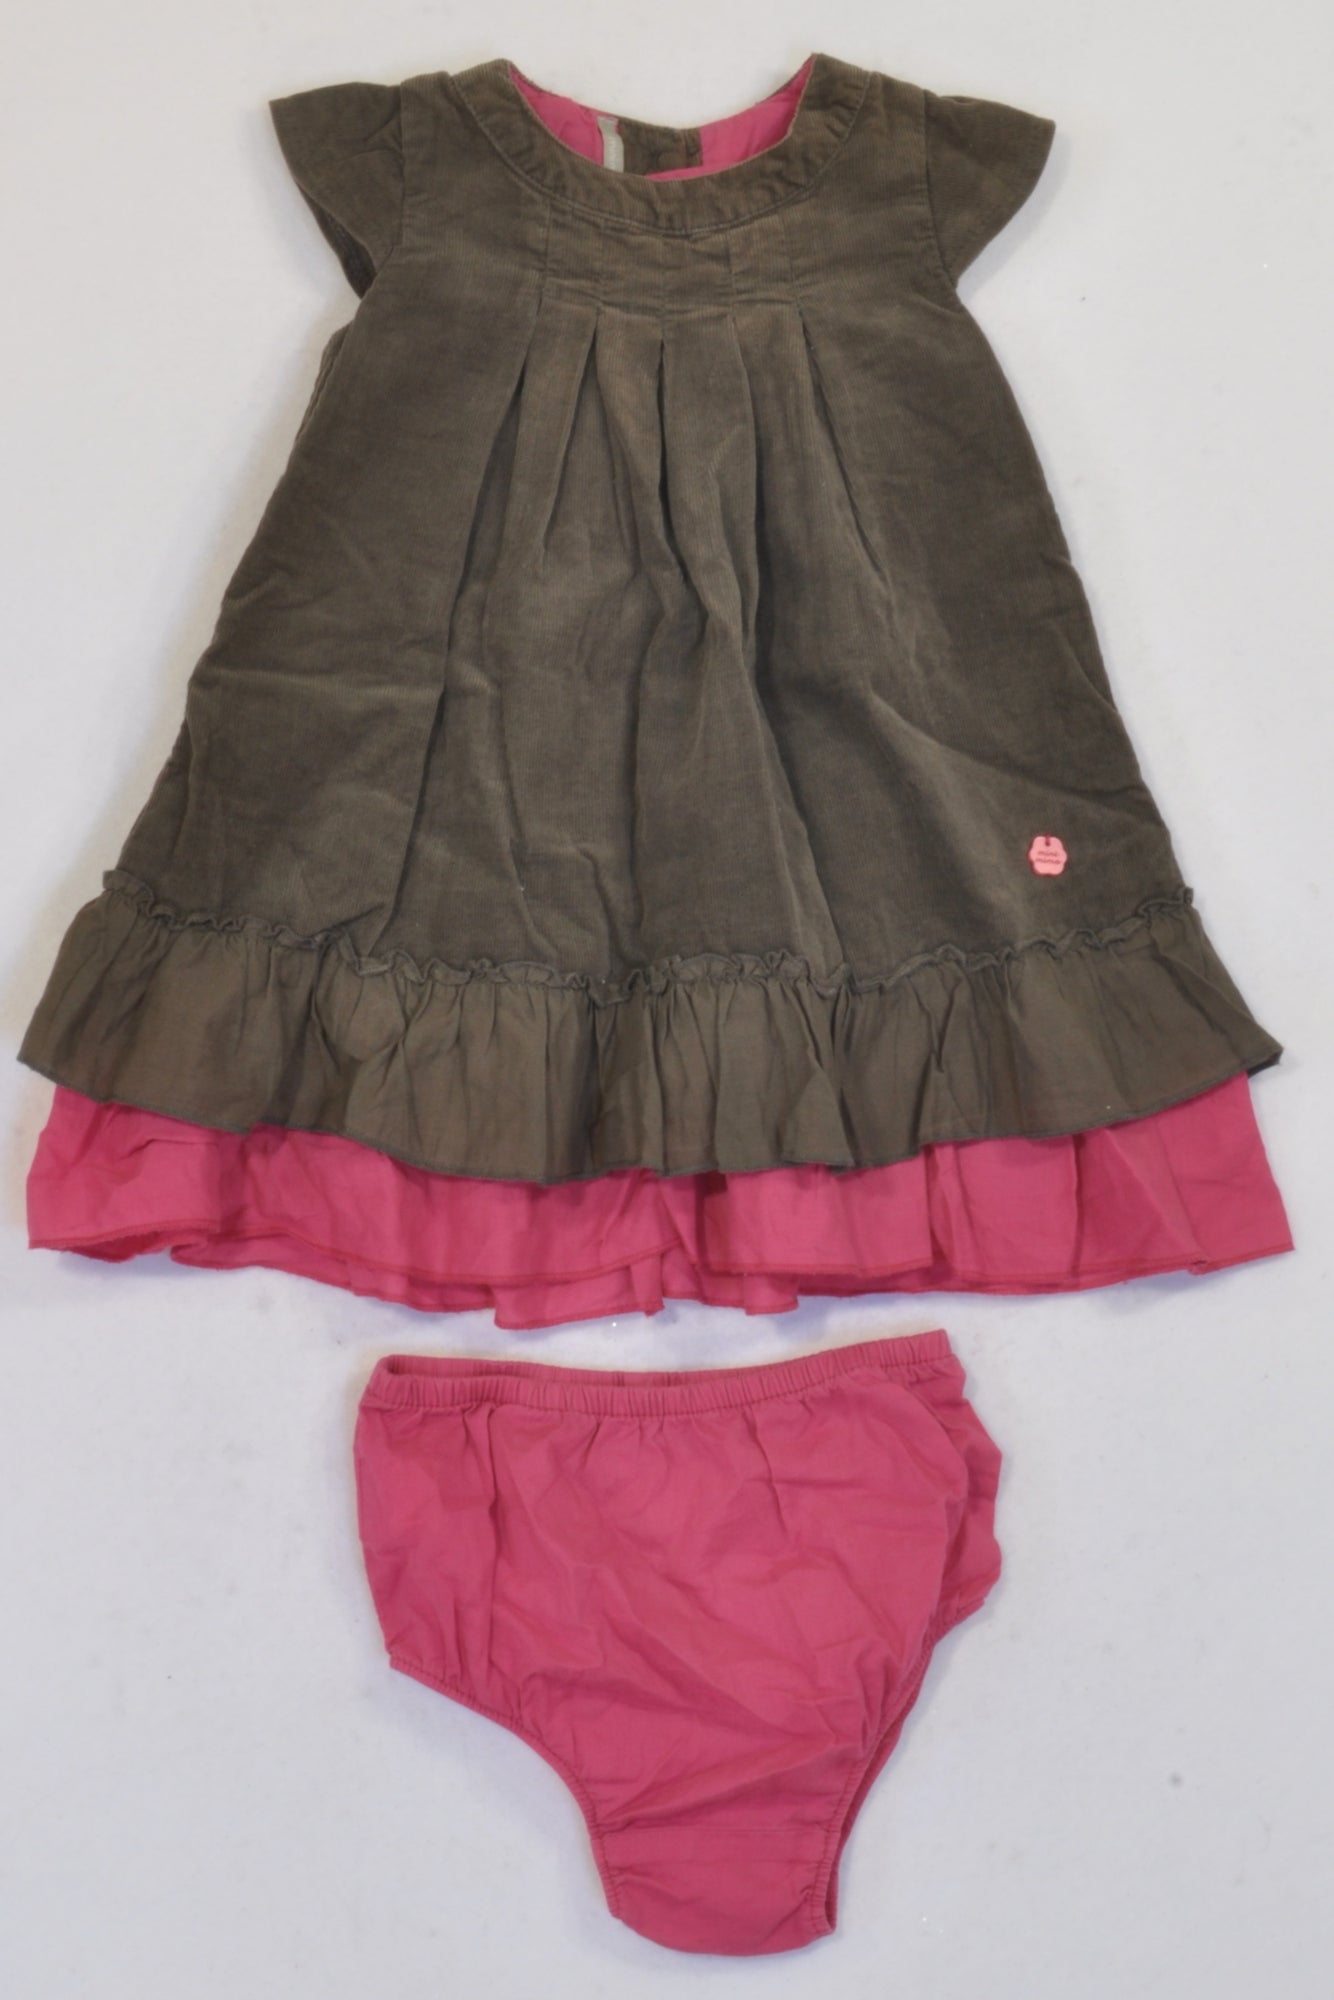 Minimimo Brown Corduroy Cerise Trim Dress & Bloomers  Outfit Girls 0-3 months